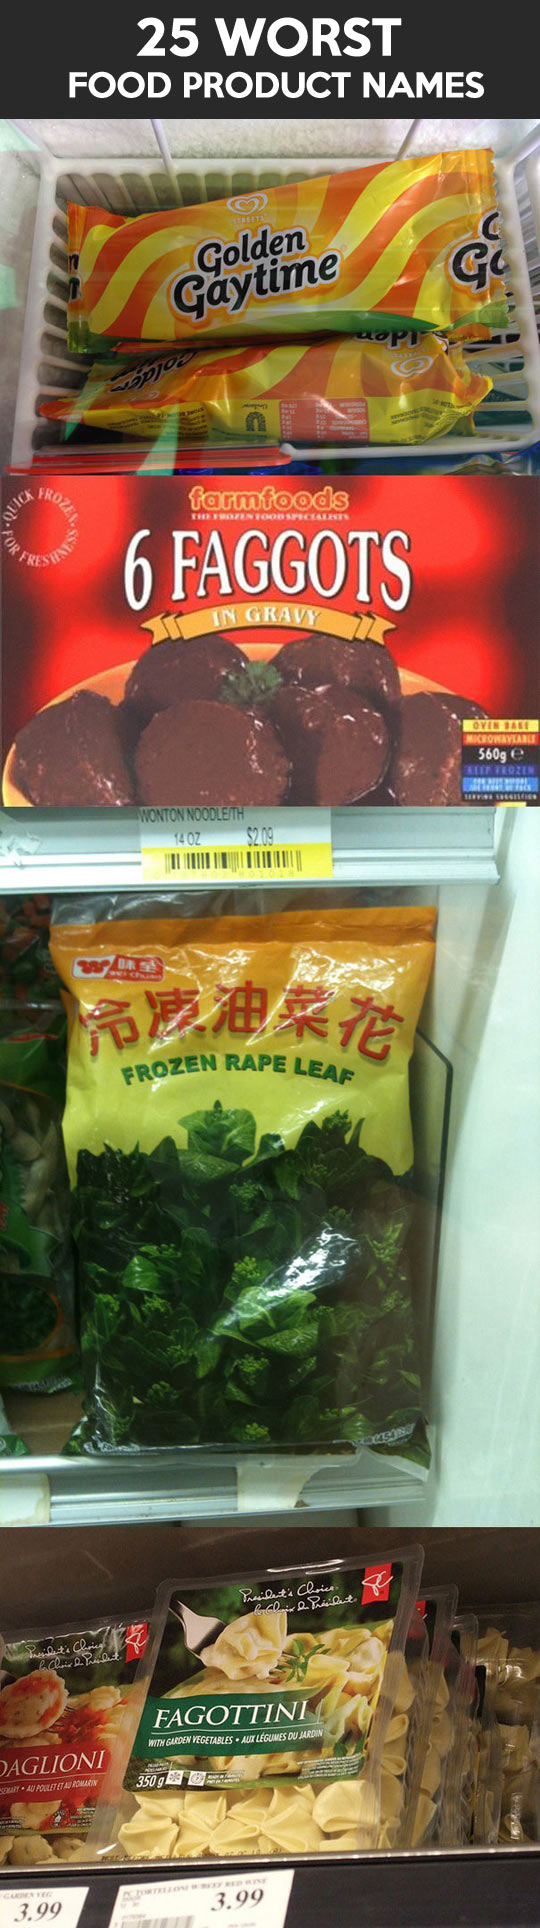 The worst food product names...